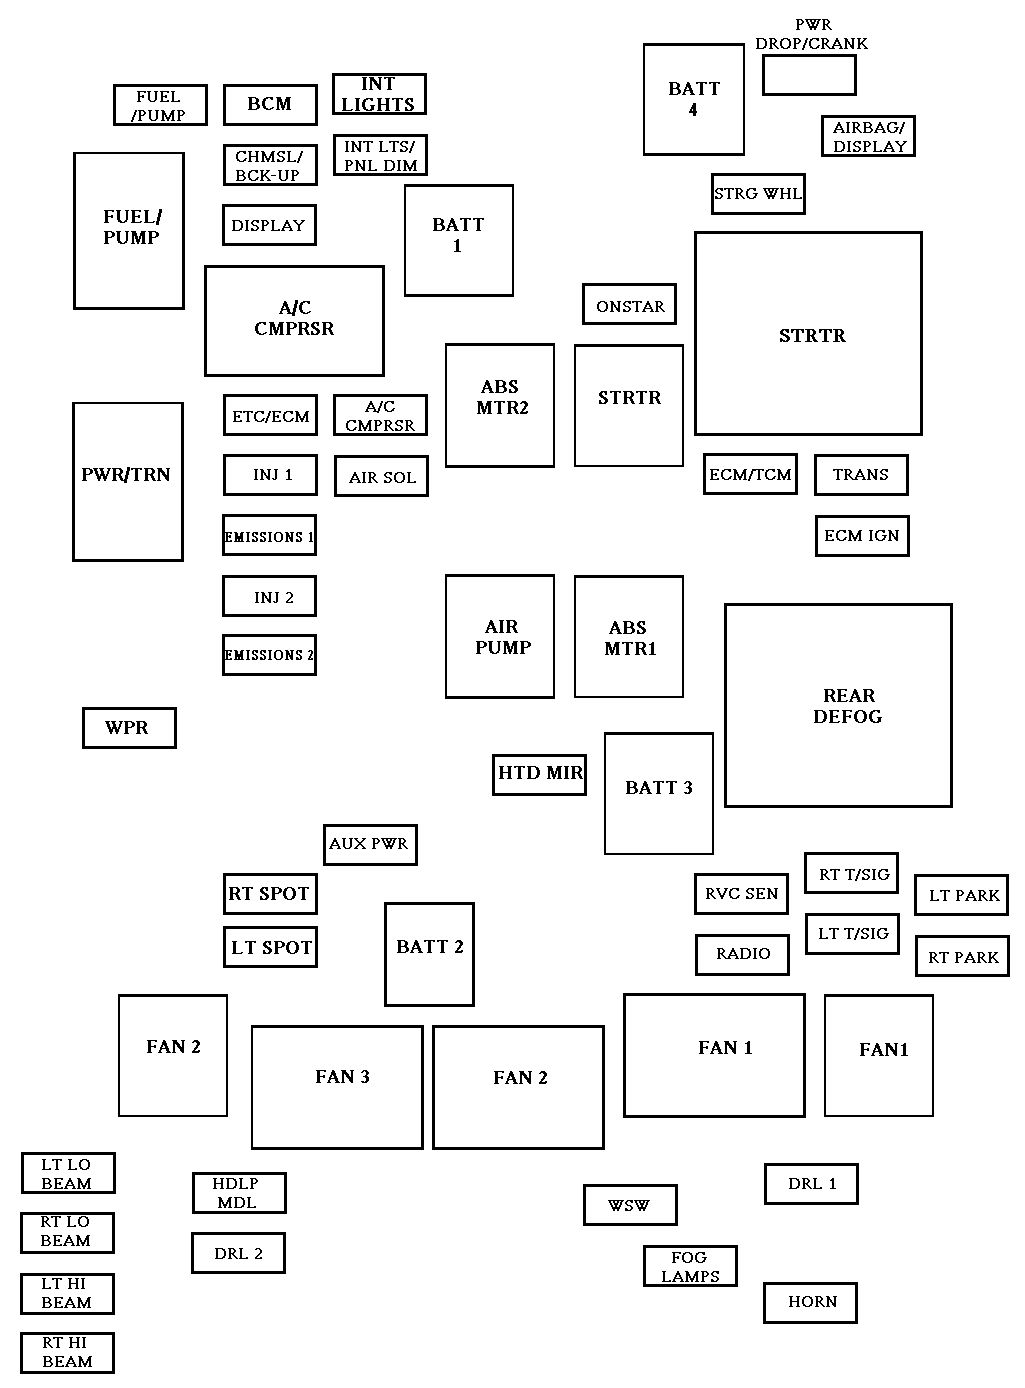 2001 Impala Fuse Box Wiring Diagram Libraries 01 Camry Location Library2010 Library 1994 Toyota